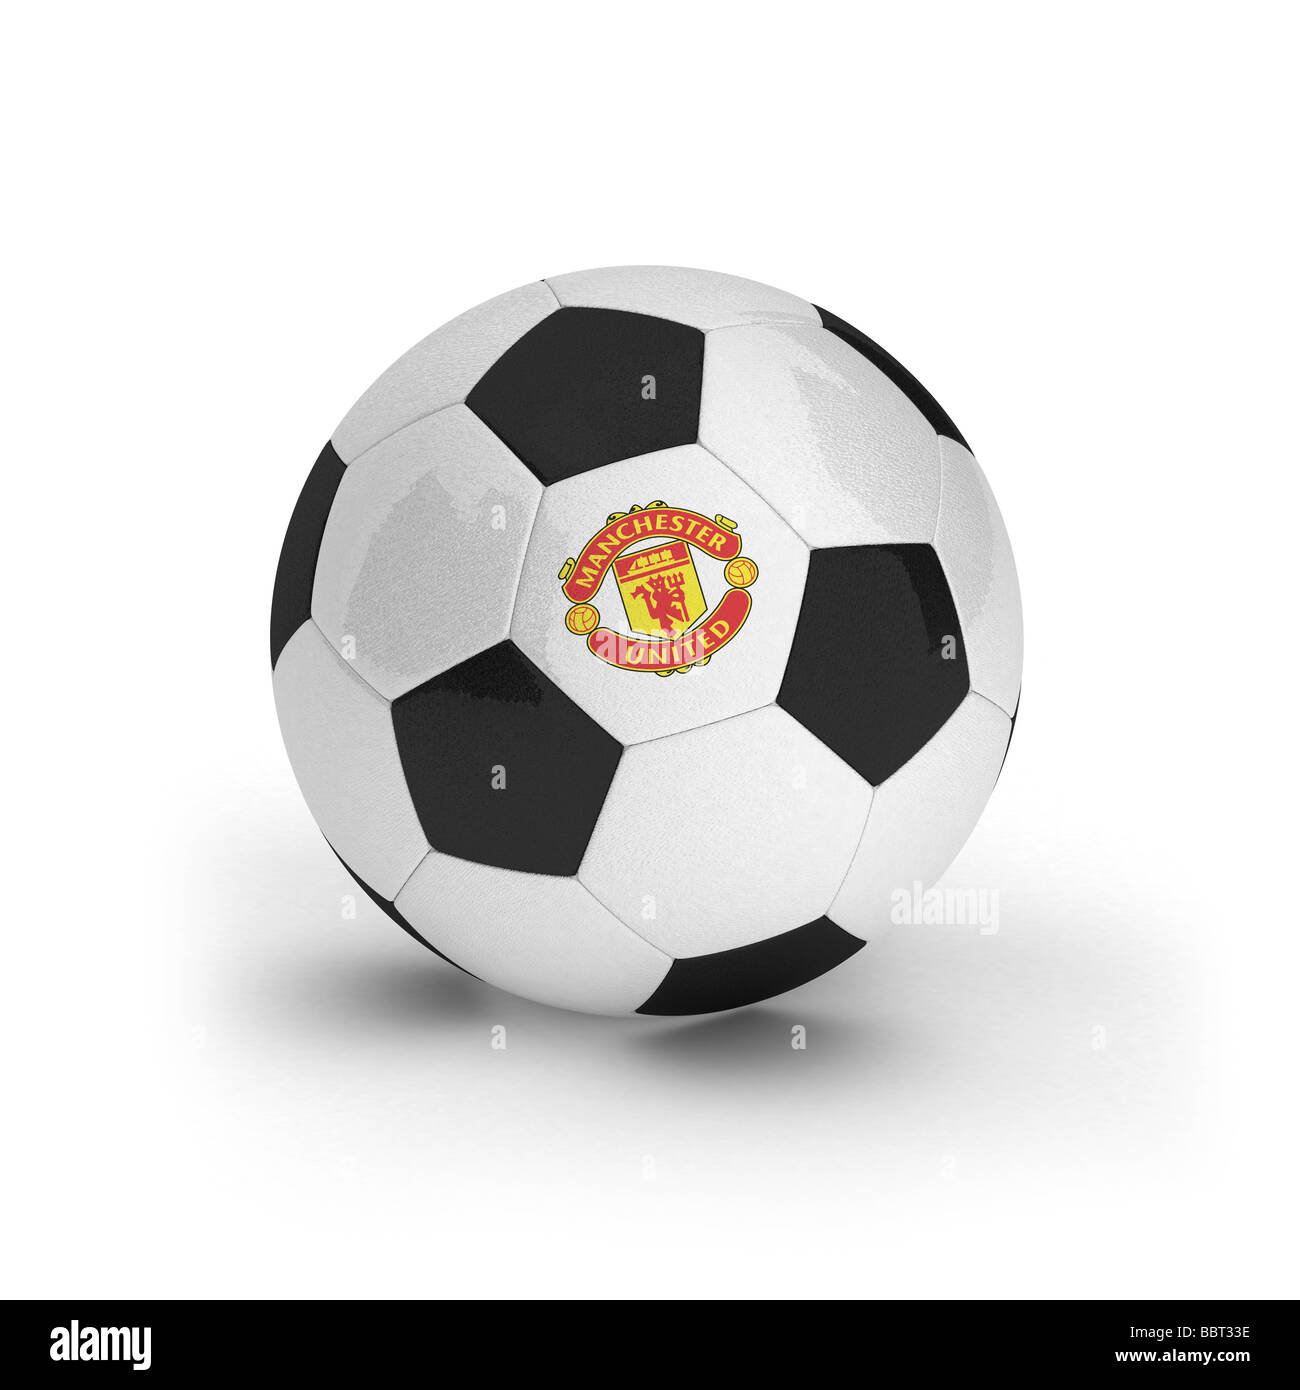 Manchester United football - Stock Image